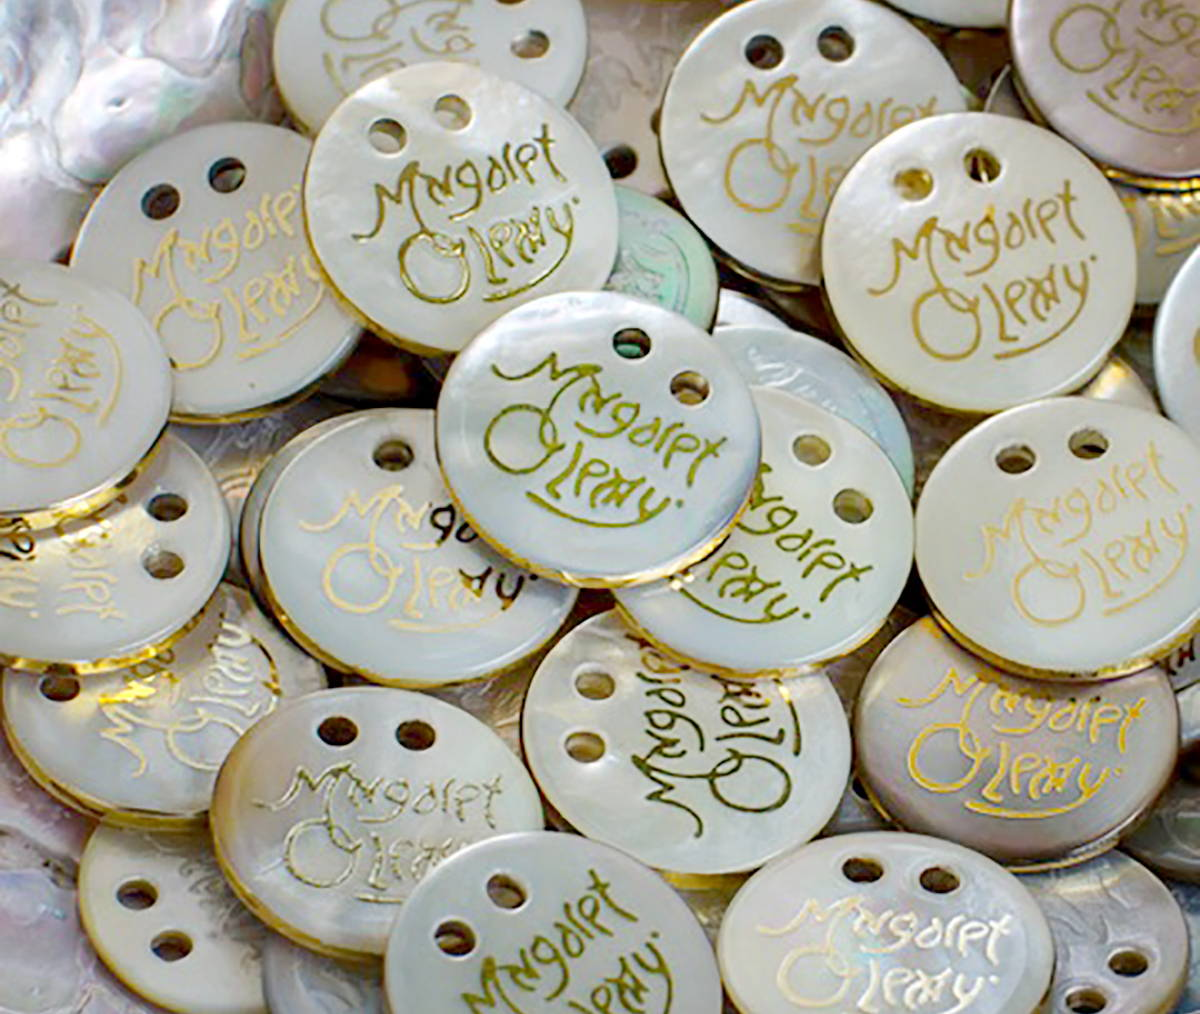 A pile of Margaret O'Leary signature pearl buttons